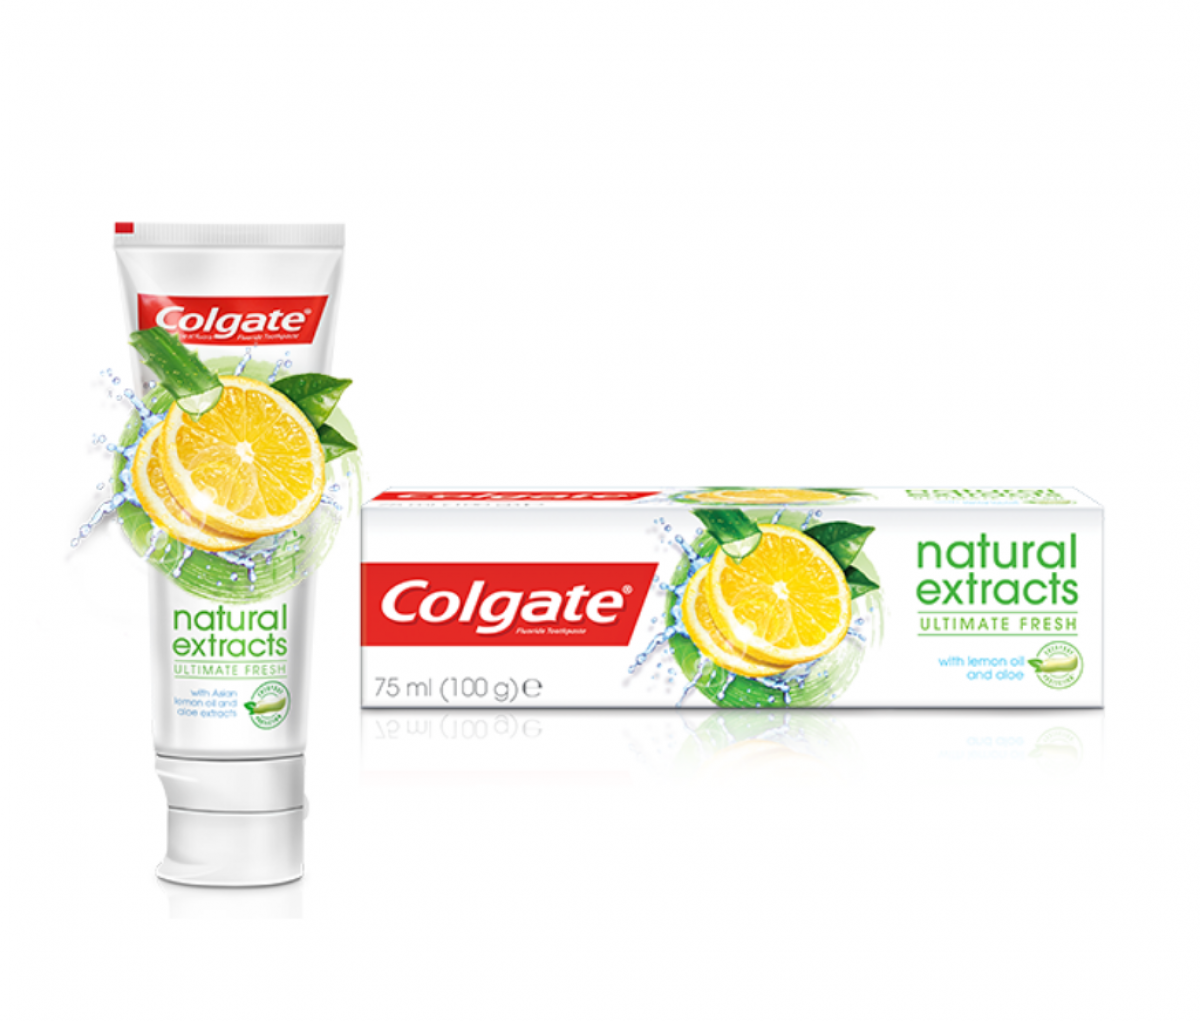 Colgate 75ml Natural Extracts Daily care